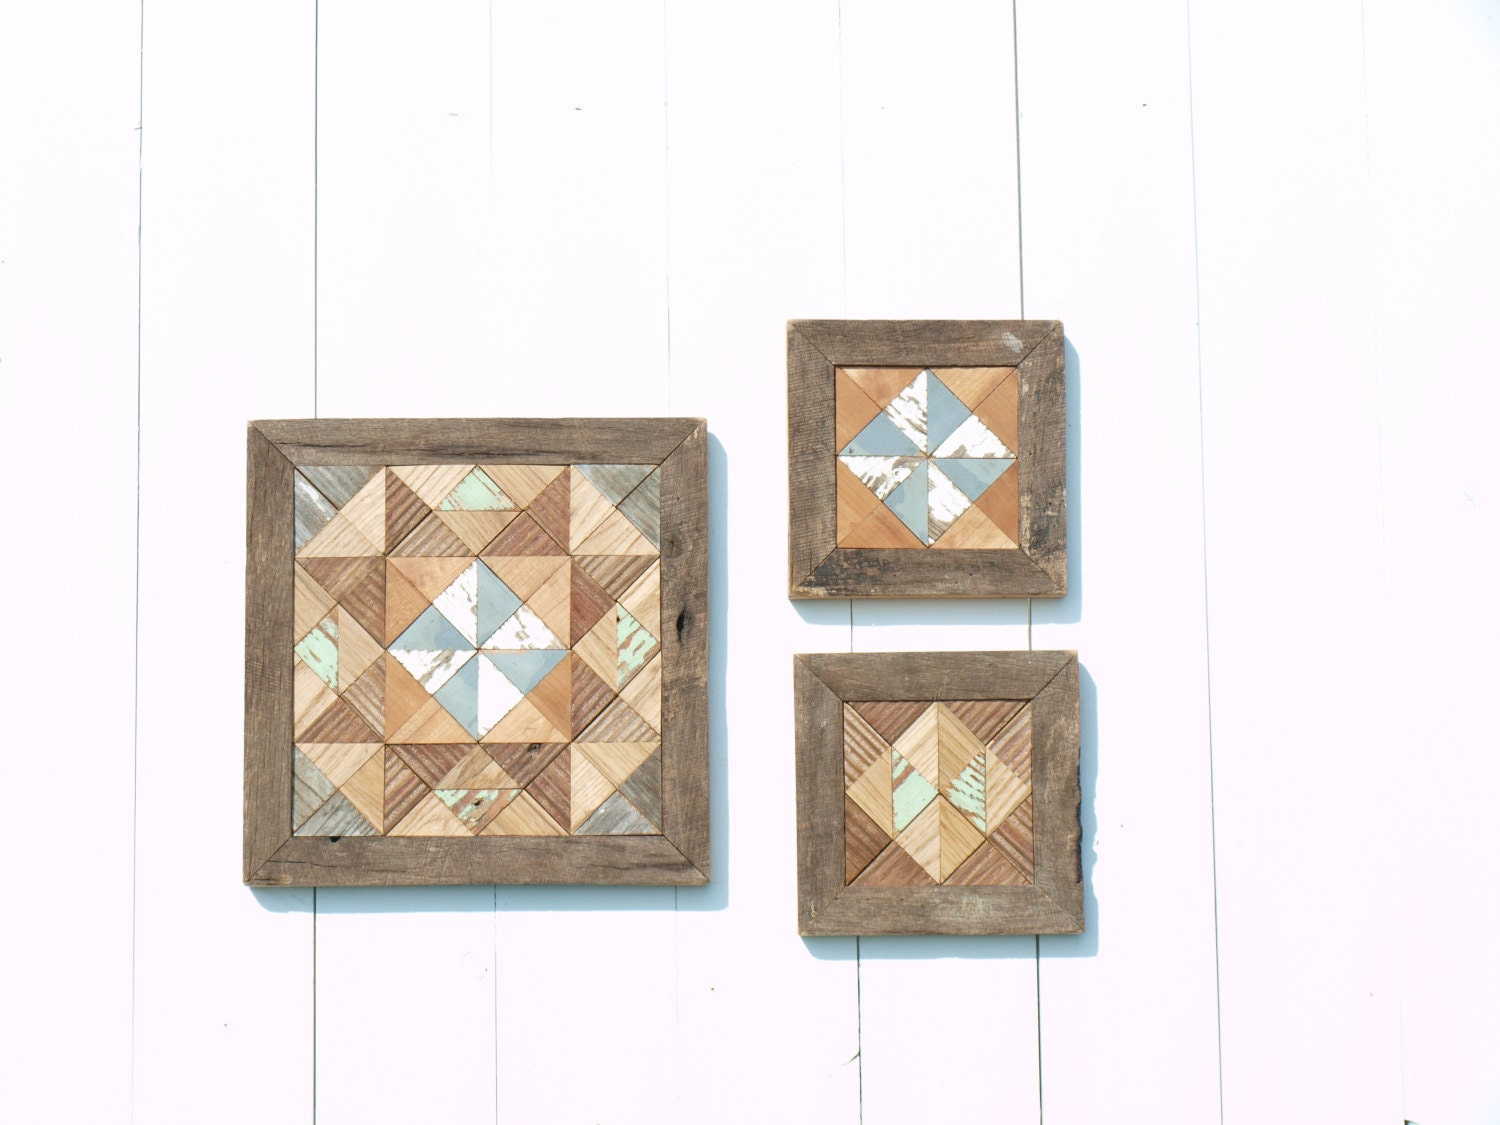 Rustic Wall Decor Set : Rustic wall decor set wooden quilt block cottage chic